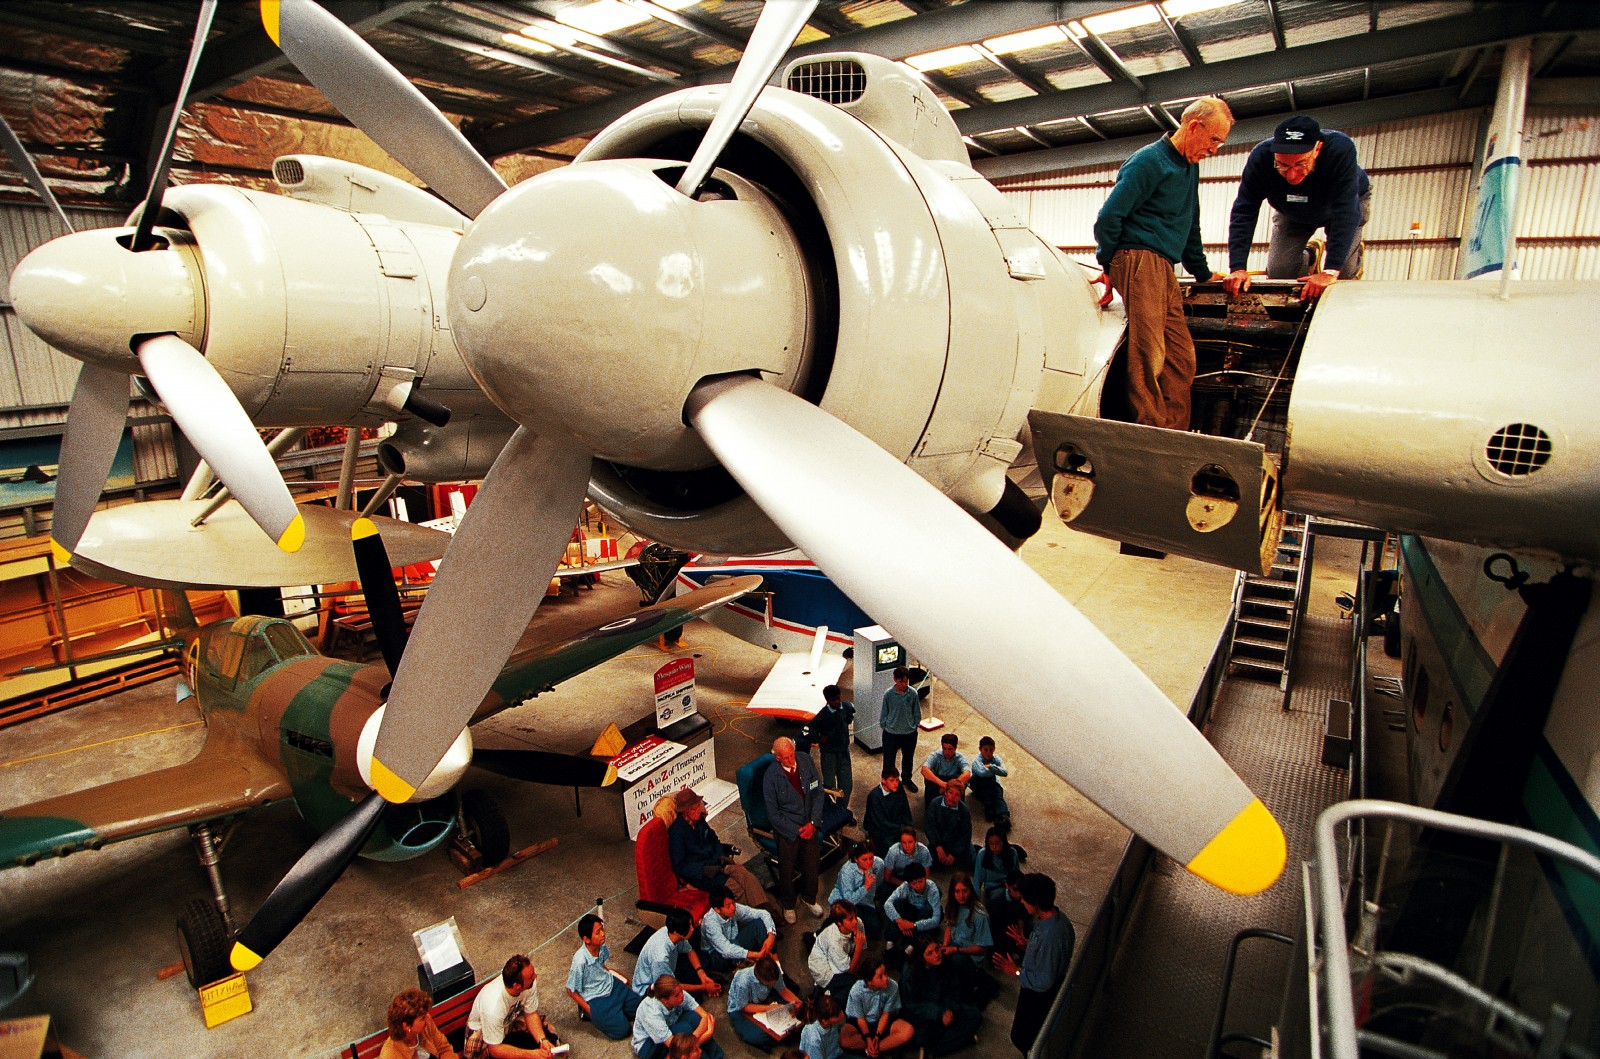 Aranui's four Bristol Hercules engines gave her a cruising speed of 322 kph, cutting the average Tasman crossing to six-and-a-half hours. Many children today will have completed the journey in half that time, but school visits to the MOTAT hangar impress younger generations with a taste of magic long lost to international air travel.